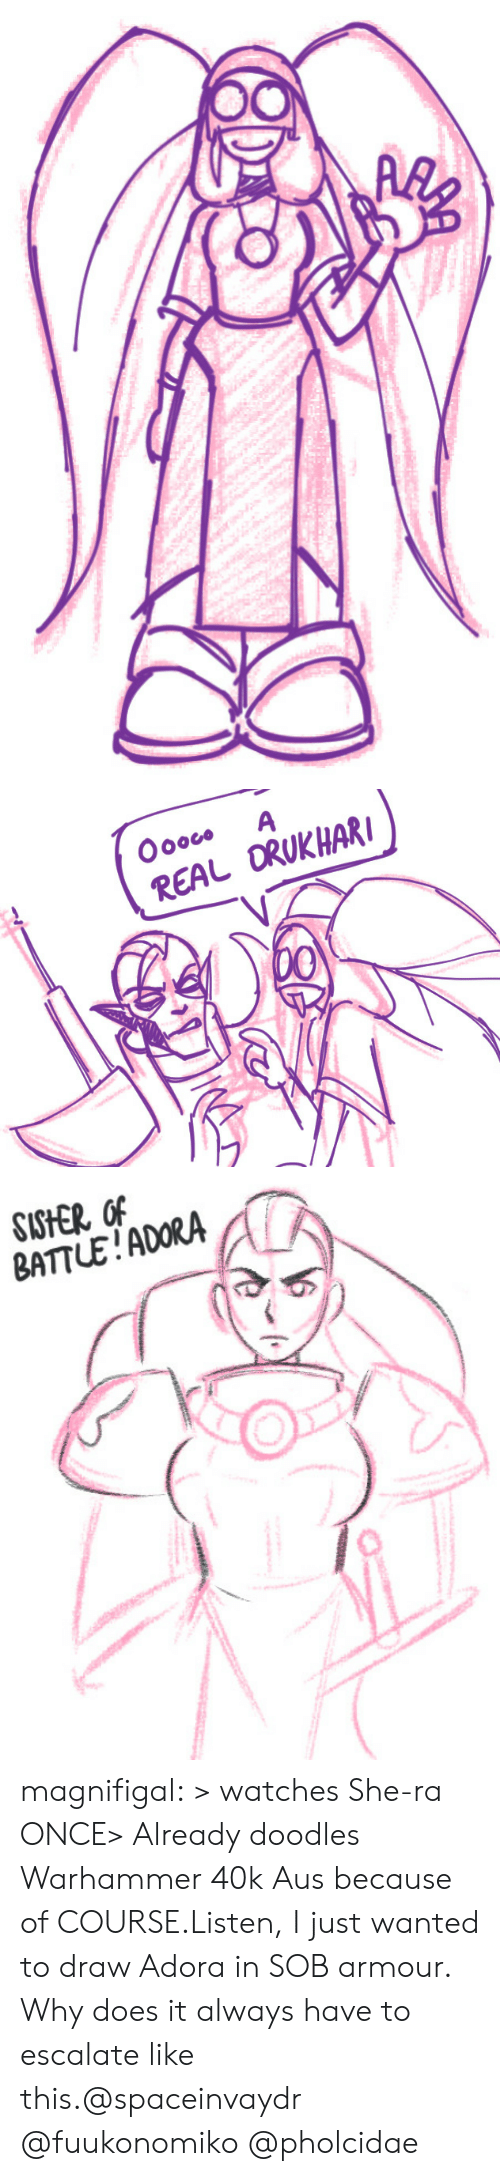 Warhammer: Oooco  A  REAL ORUKHAR  00   SISHER OF  BATTLE!ADORA magnifigal:  > watches She-ra ONCE> Already doodles Warhammer 40k Aus because of COURSE.Listen, I just wanted to draw Adora in SOB armour. Why does it always have to escalate like this.@spaceinvaydr @fuukonomiko @pholcidae